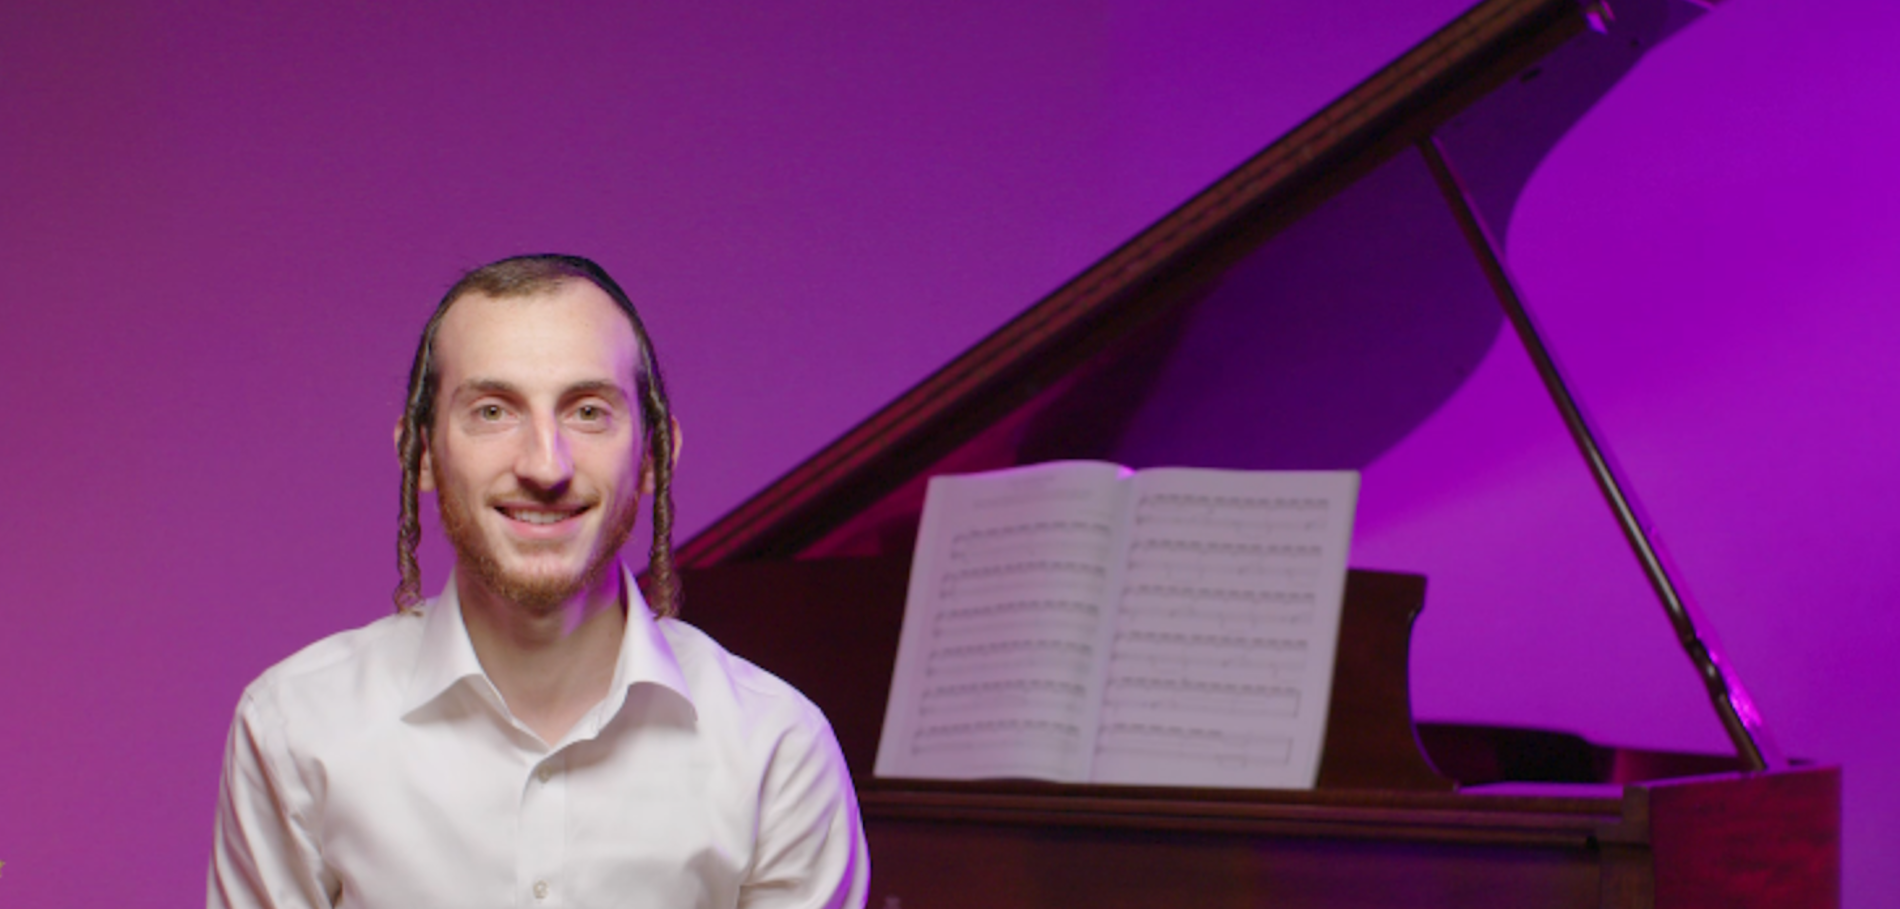 Meet Orthodox Jewish All Star Shulem Lemmer, First Born Hasidic Jew to Sign With a Major Record Label